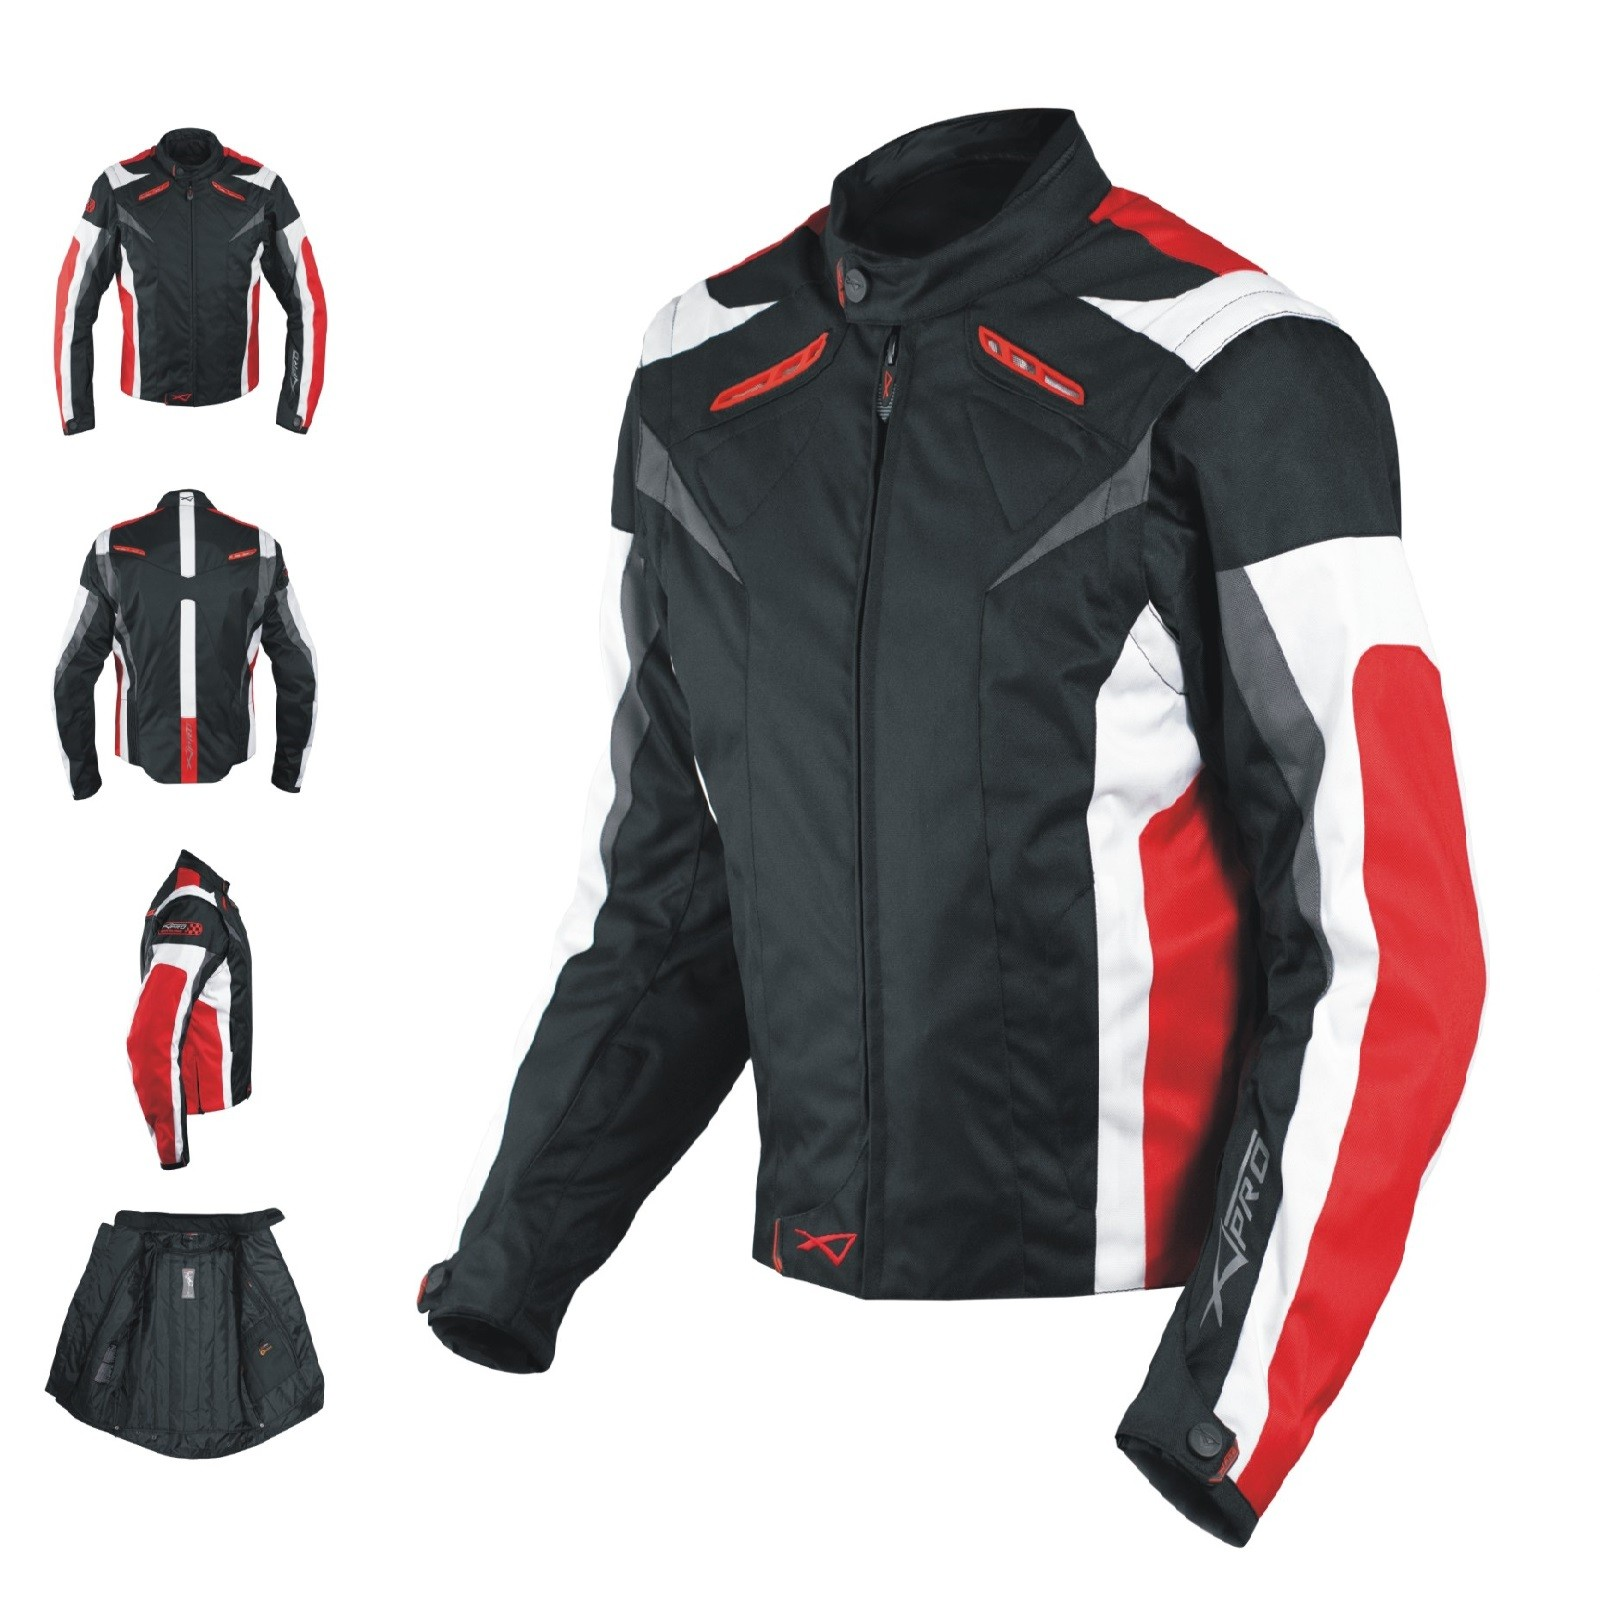 Hart-Lady_Donna-A-Pro-Giacca-Jacket-Red-Rosso-Moto-Motorcycle-Sonic-Moto